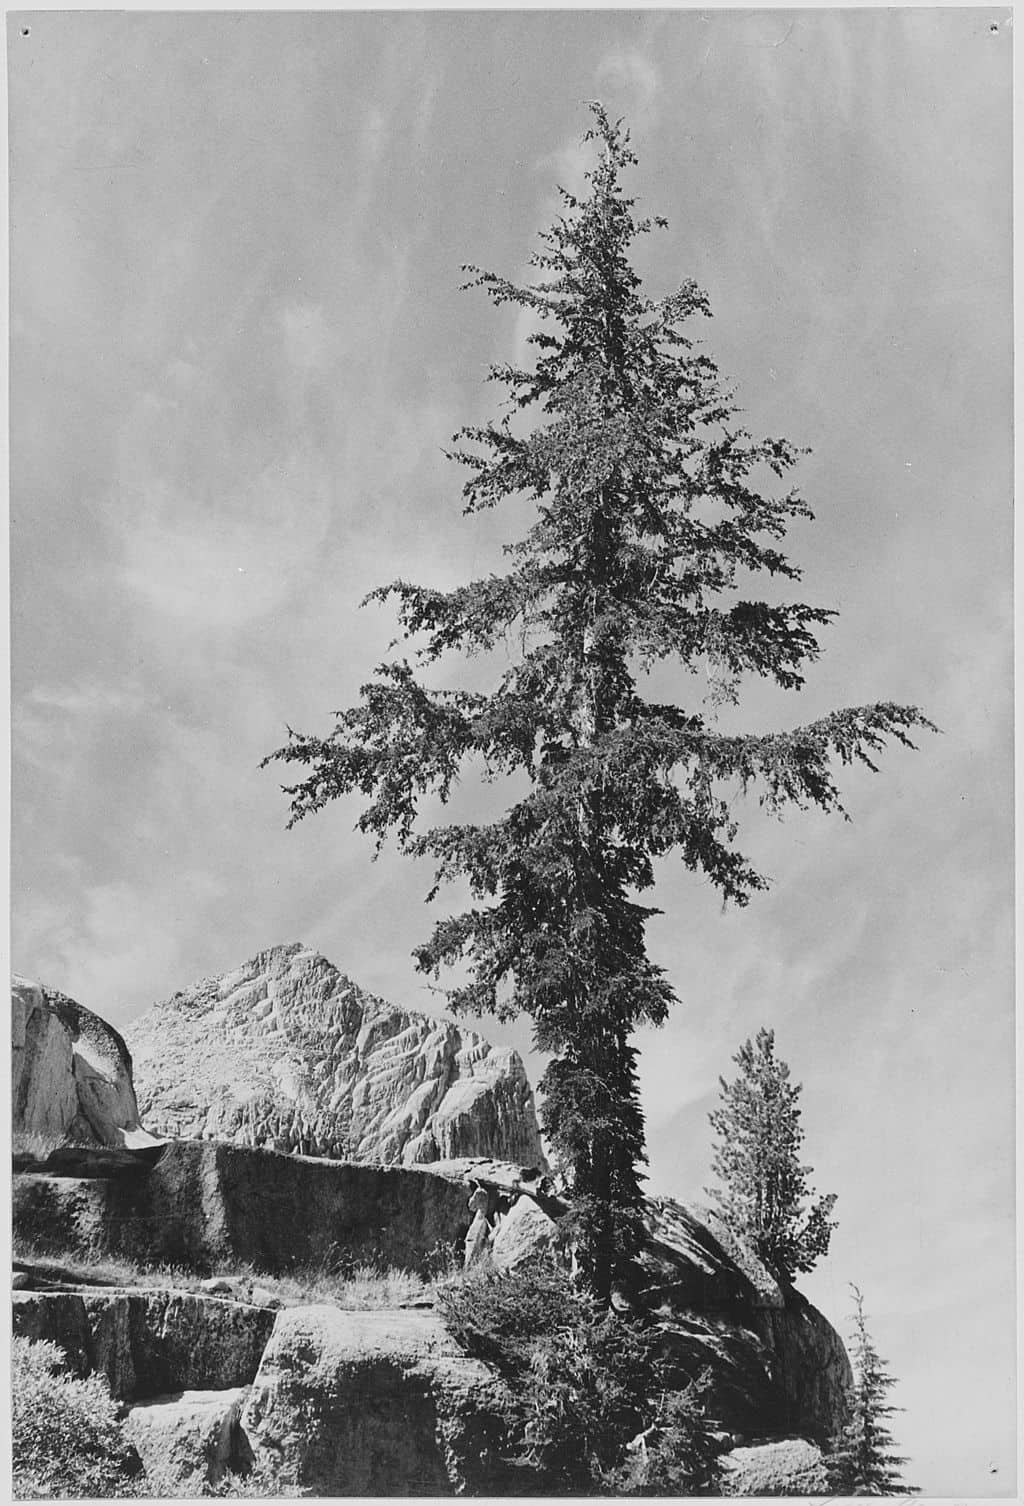 Ansel Adams National Archives 79 AA H08 min image